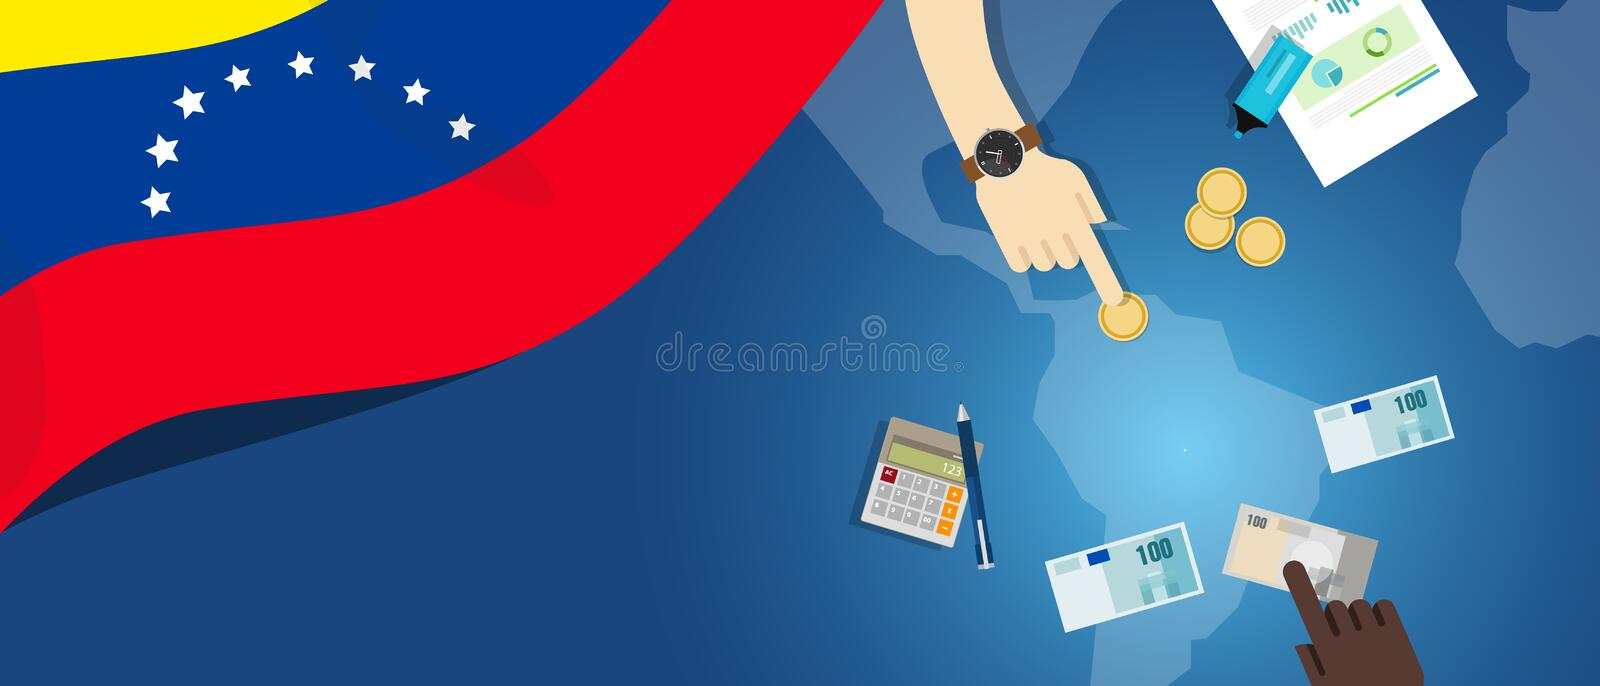 Venezuela economy, fiscal money trade concept illustration of financial banking budget with flag map and currency. Venezuela economy fiscal money trade concept vector illustration